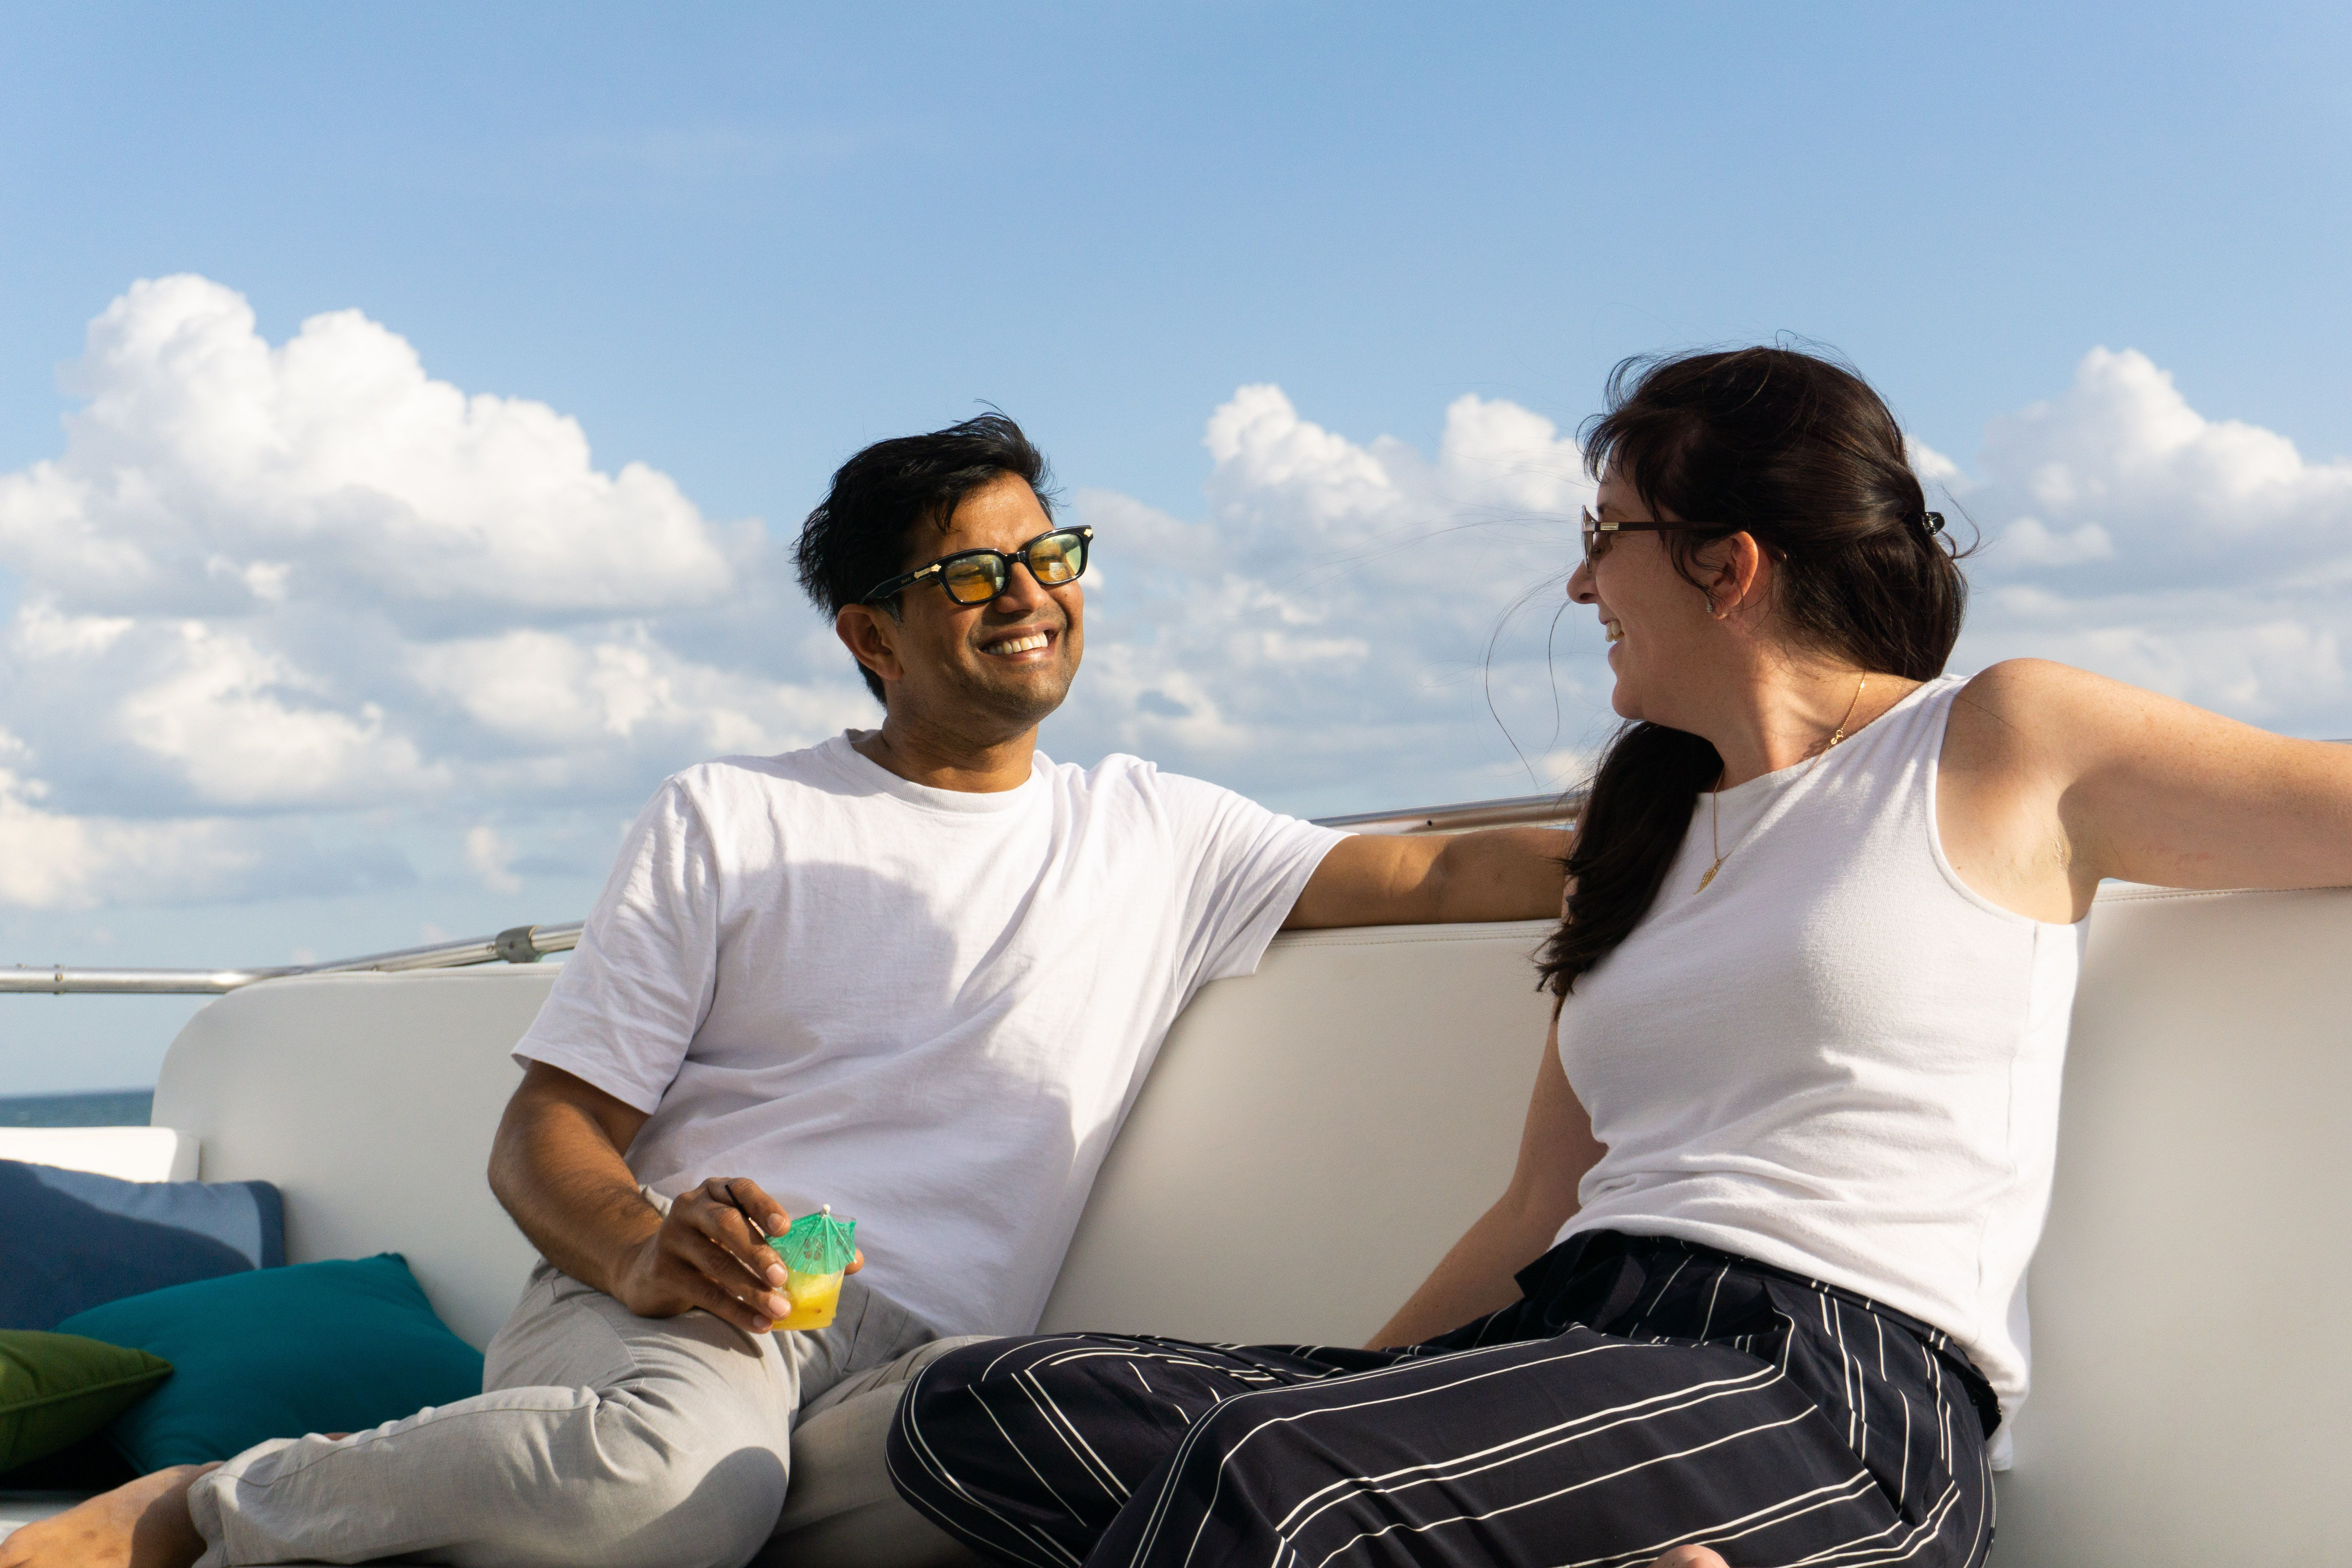 Enjoy A Romantic Boat Ride In Chicago With Your Loved One